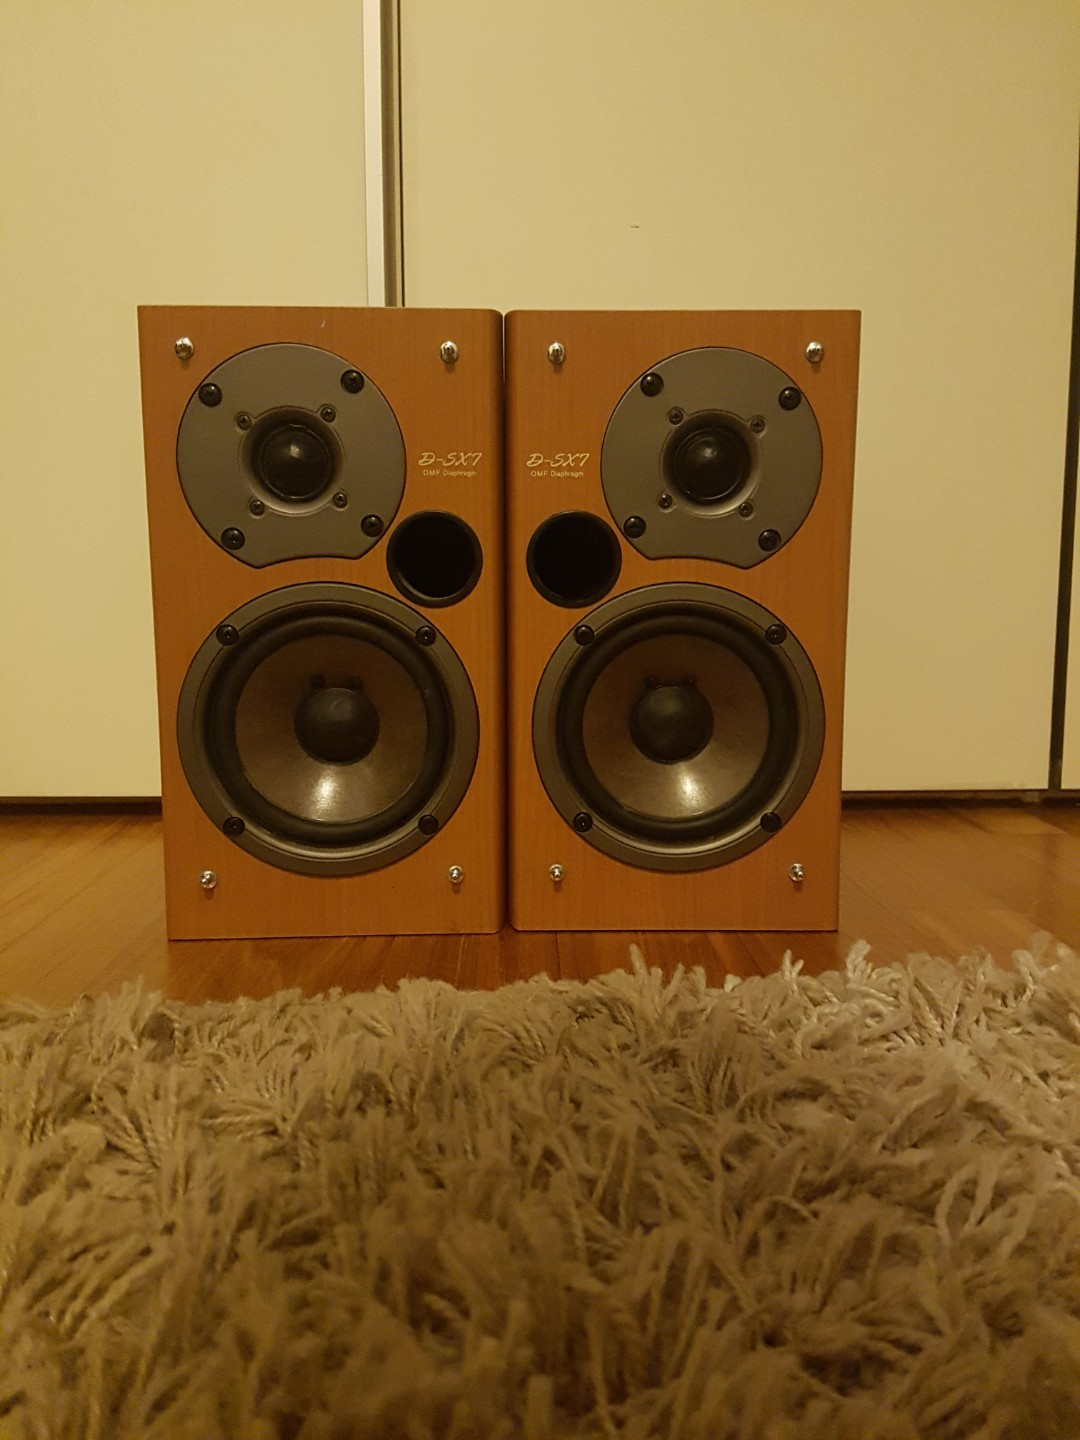 ONKYO speakers amplifier D-SX 7, Electronics, Audio on Carousell